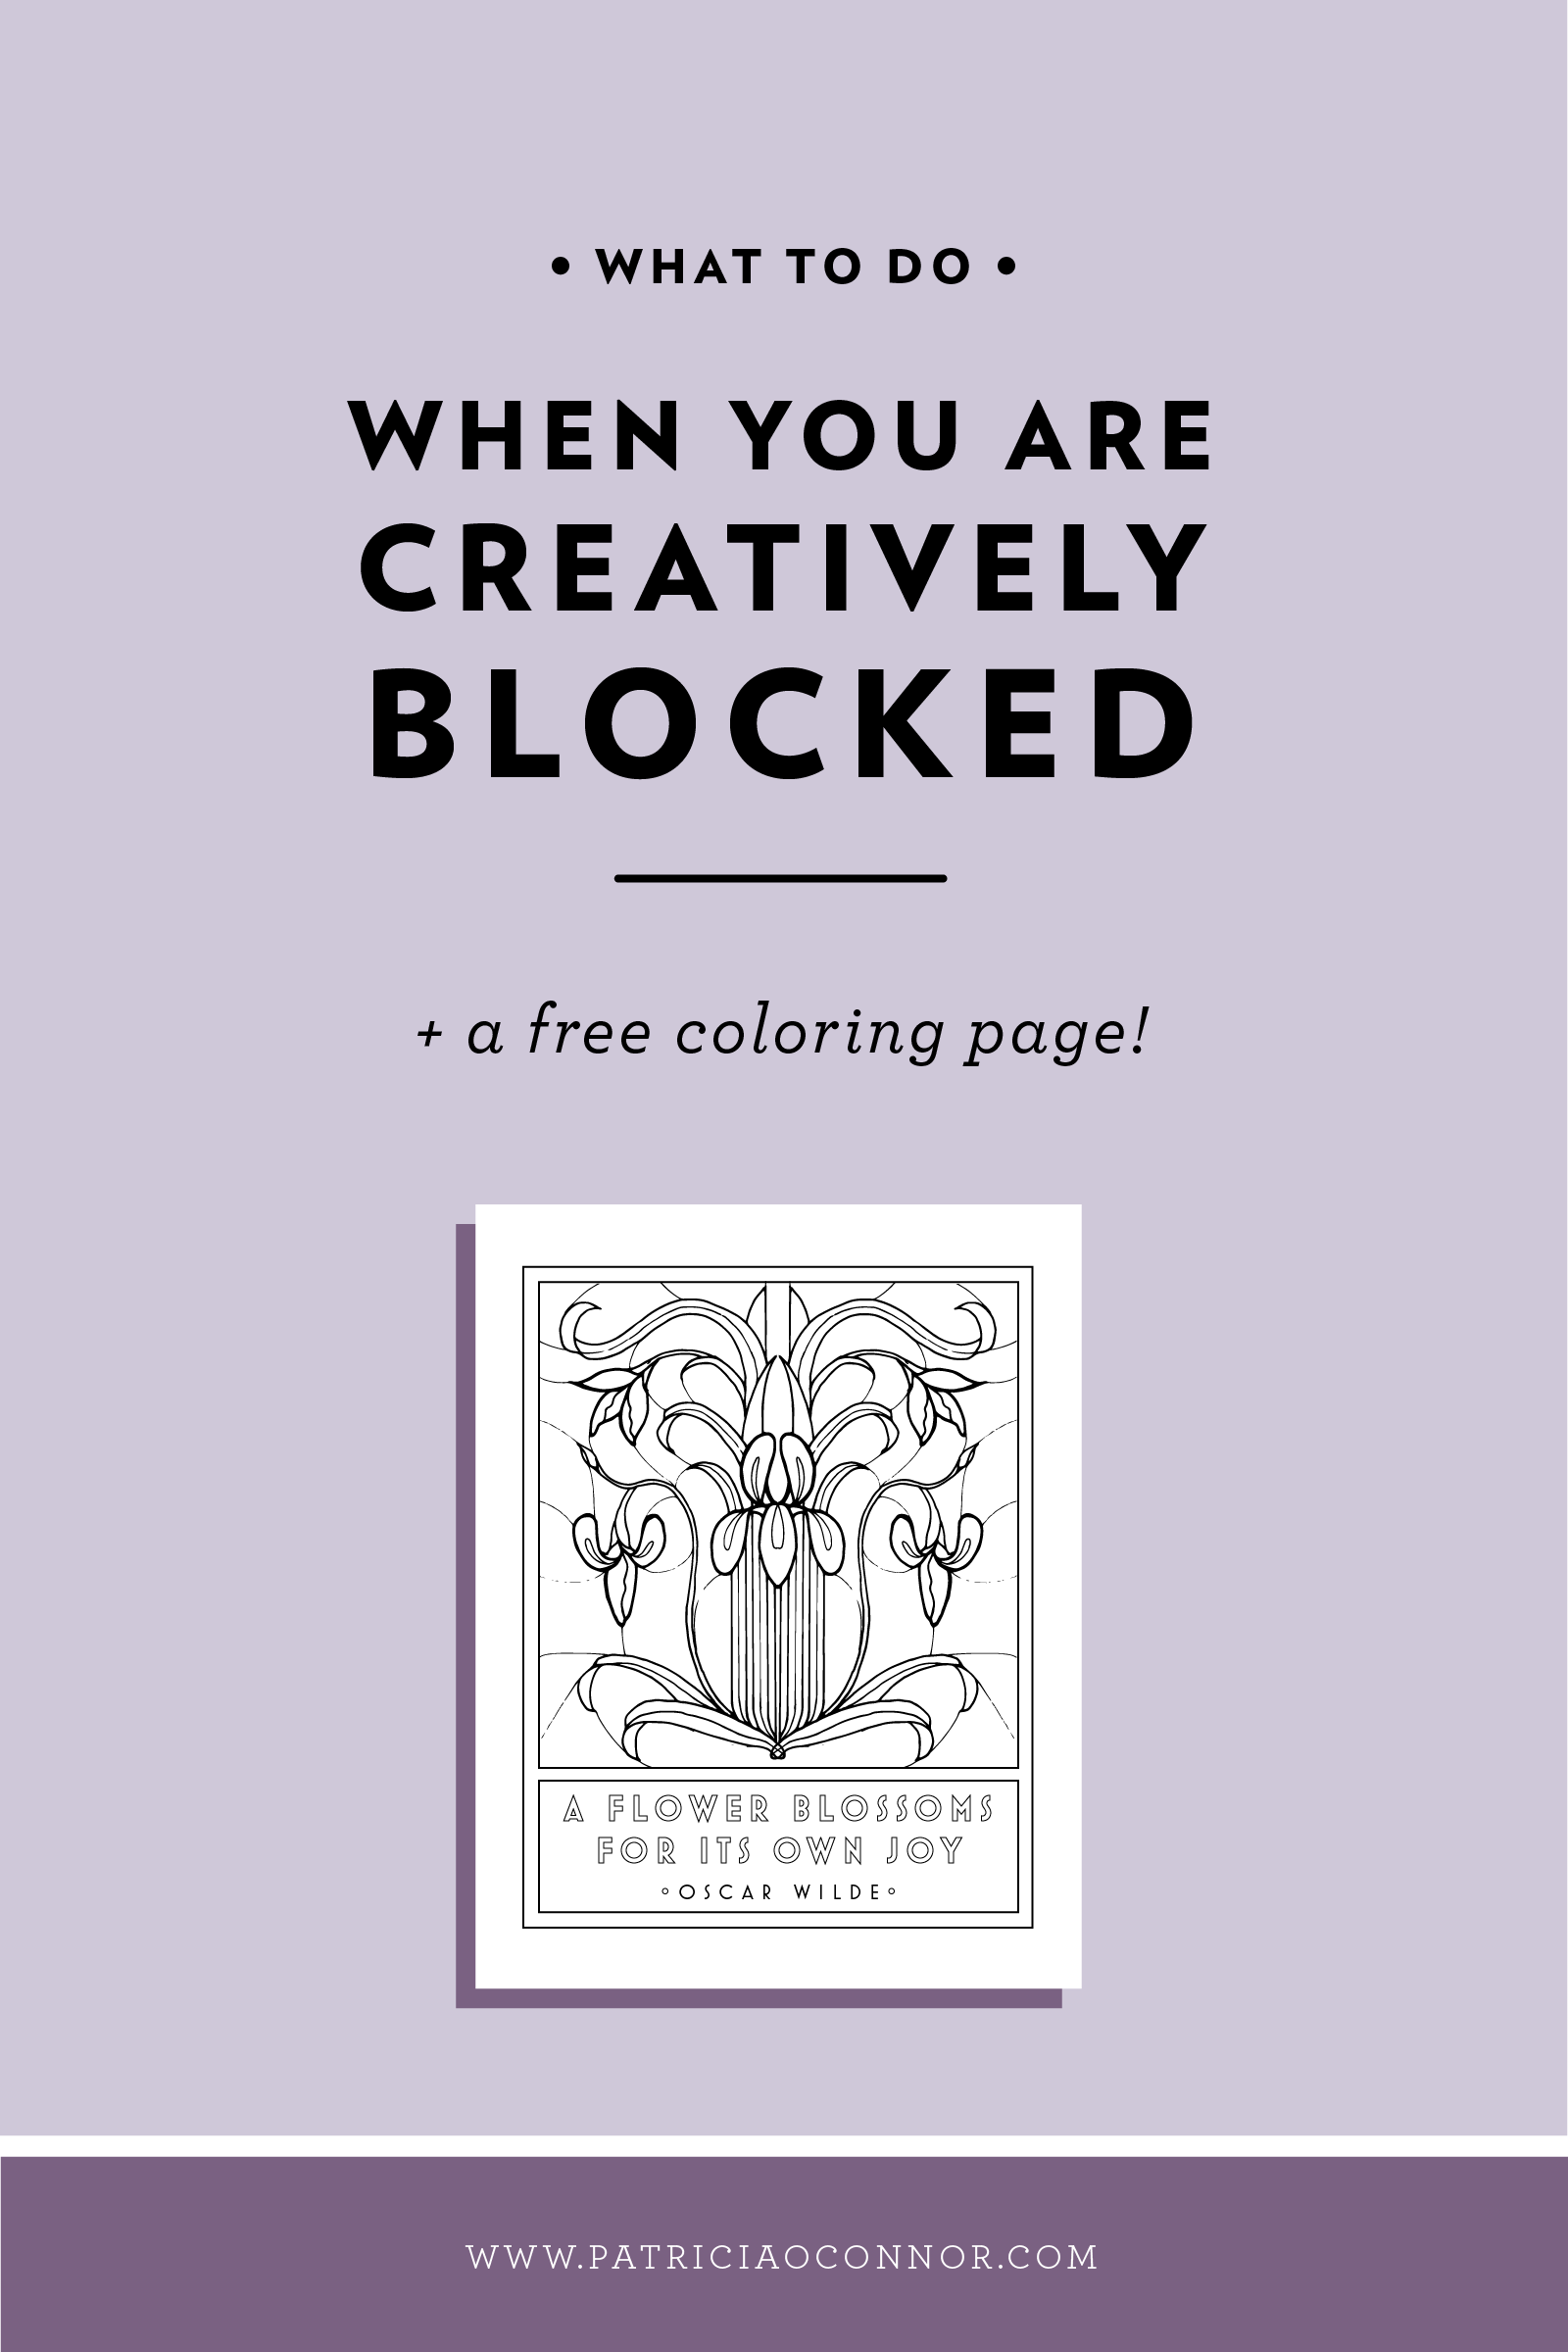 Read this post to learn how to get past creative blocks!